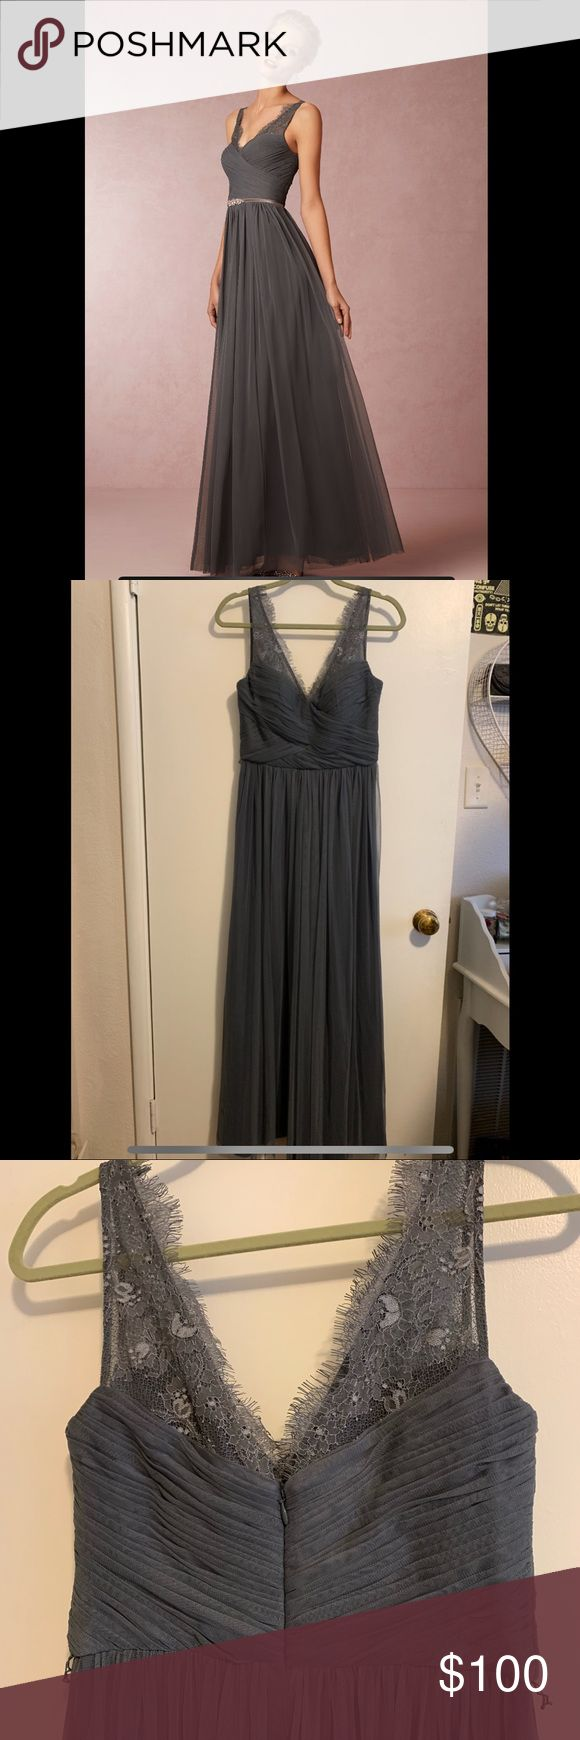 BHLDN hitherto charcoal chiffon lace dress Beautiful bridesmaid or wedding guest or prom dress, really suitable for any formal occasion. Carried by An...